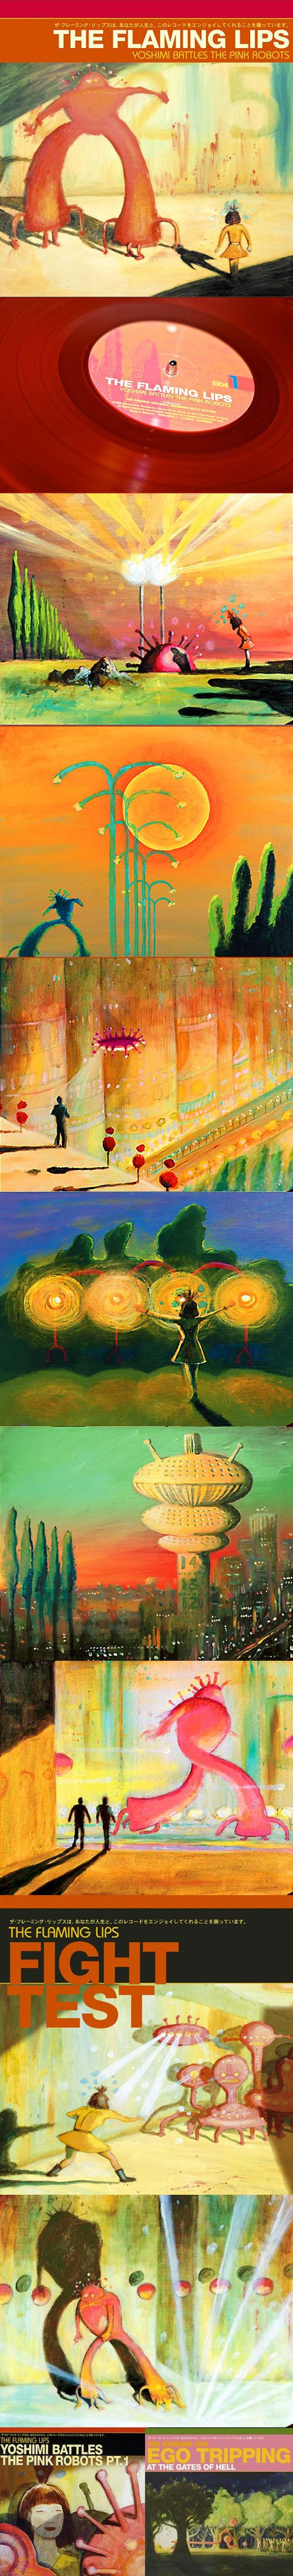 The Flaming Lips Yoshimi Battles The Pink Robots Flaming Lips Pink Lips Art Album Cover Art